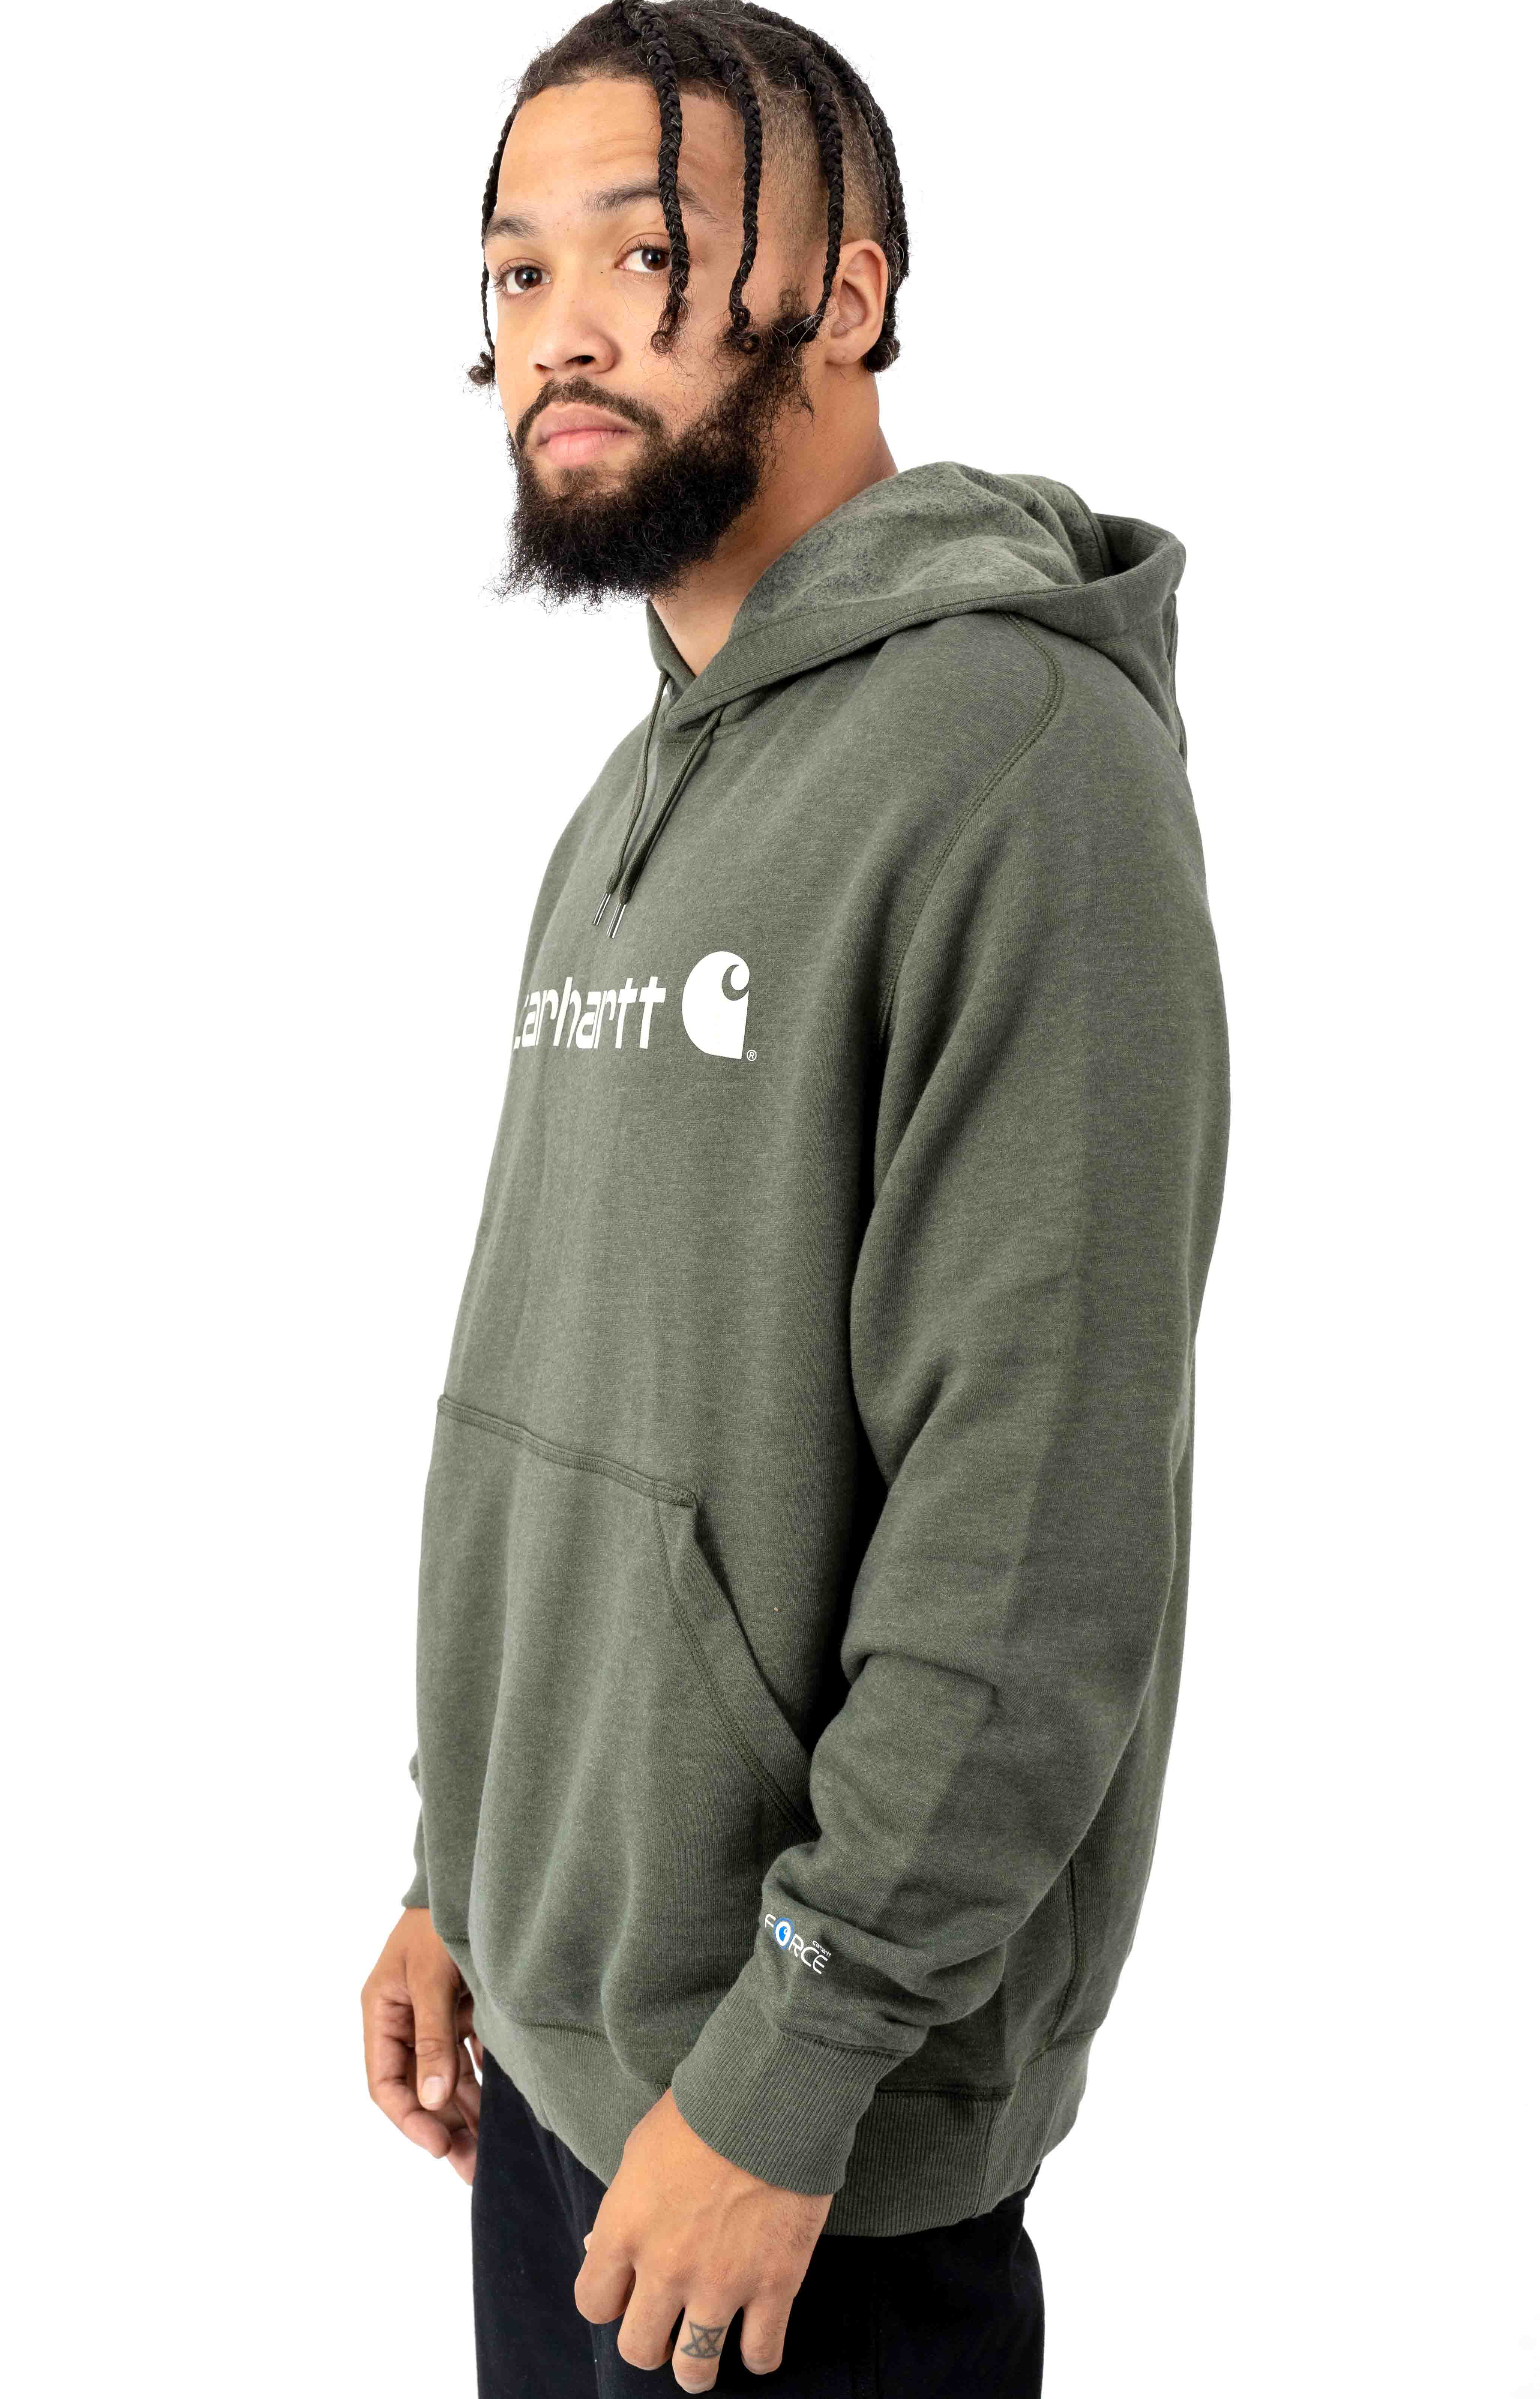 (103873) Force Delmont Signature Graphic Pullover Hoodie - Moss Heather  2